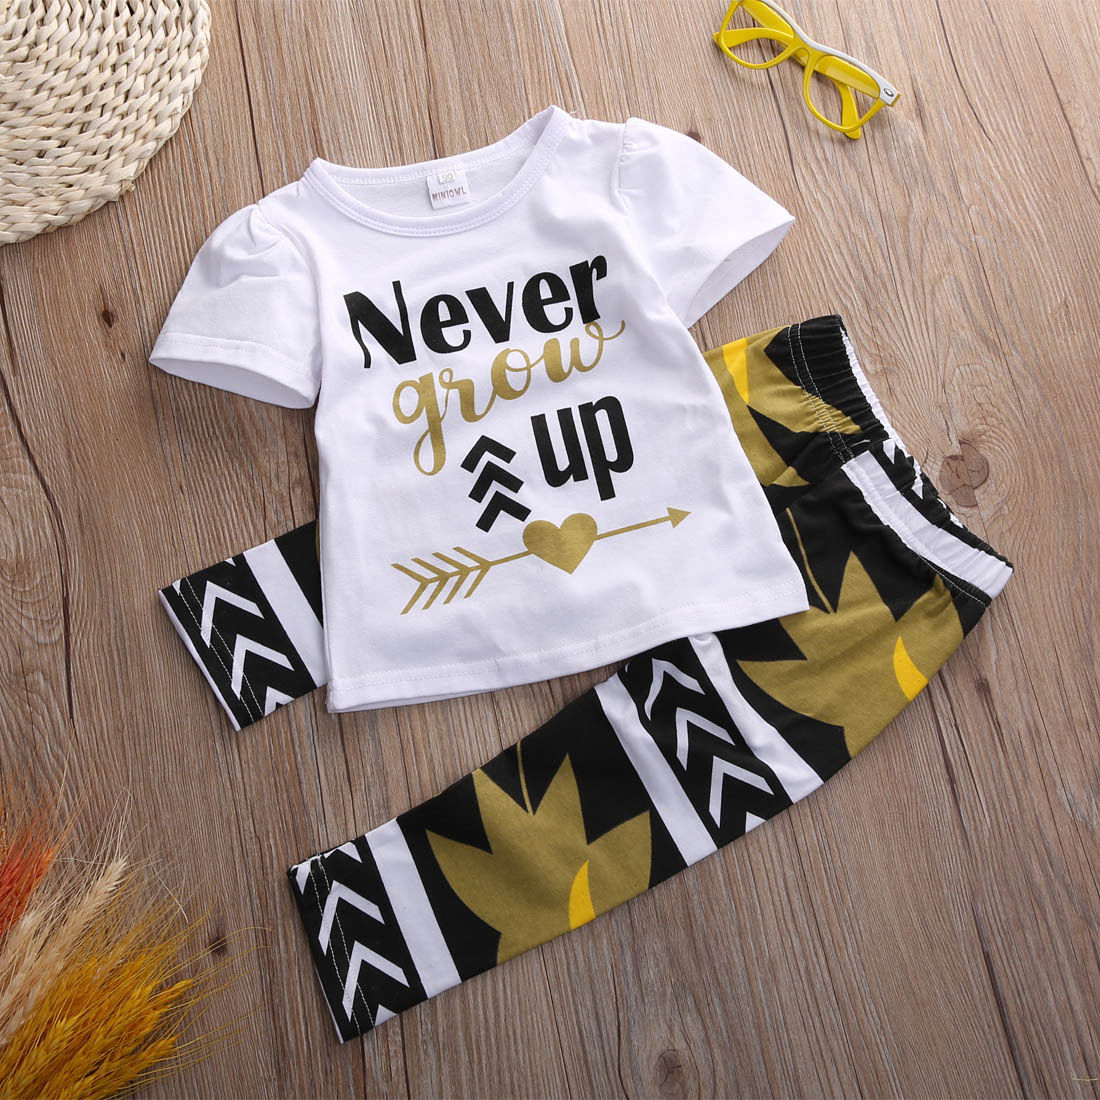 2017 summer toddler girls clothing casual cartoon sets kids clothes brand fashion 1 2 3 4 5 6 years childrens sports suits